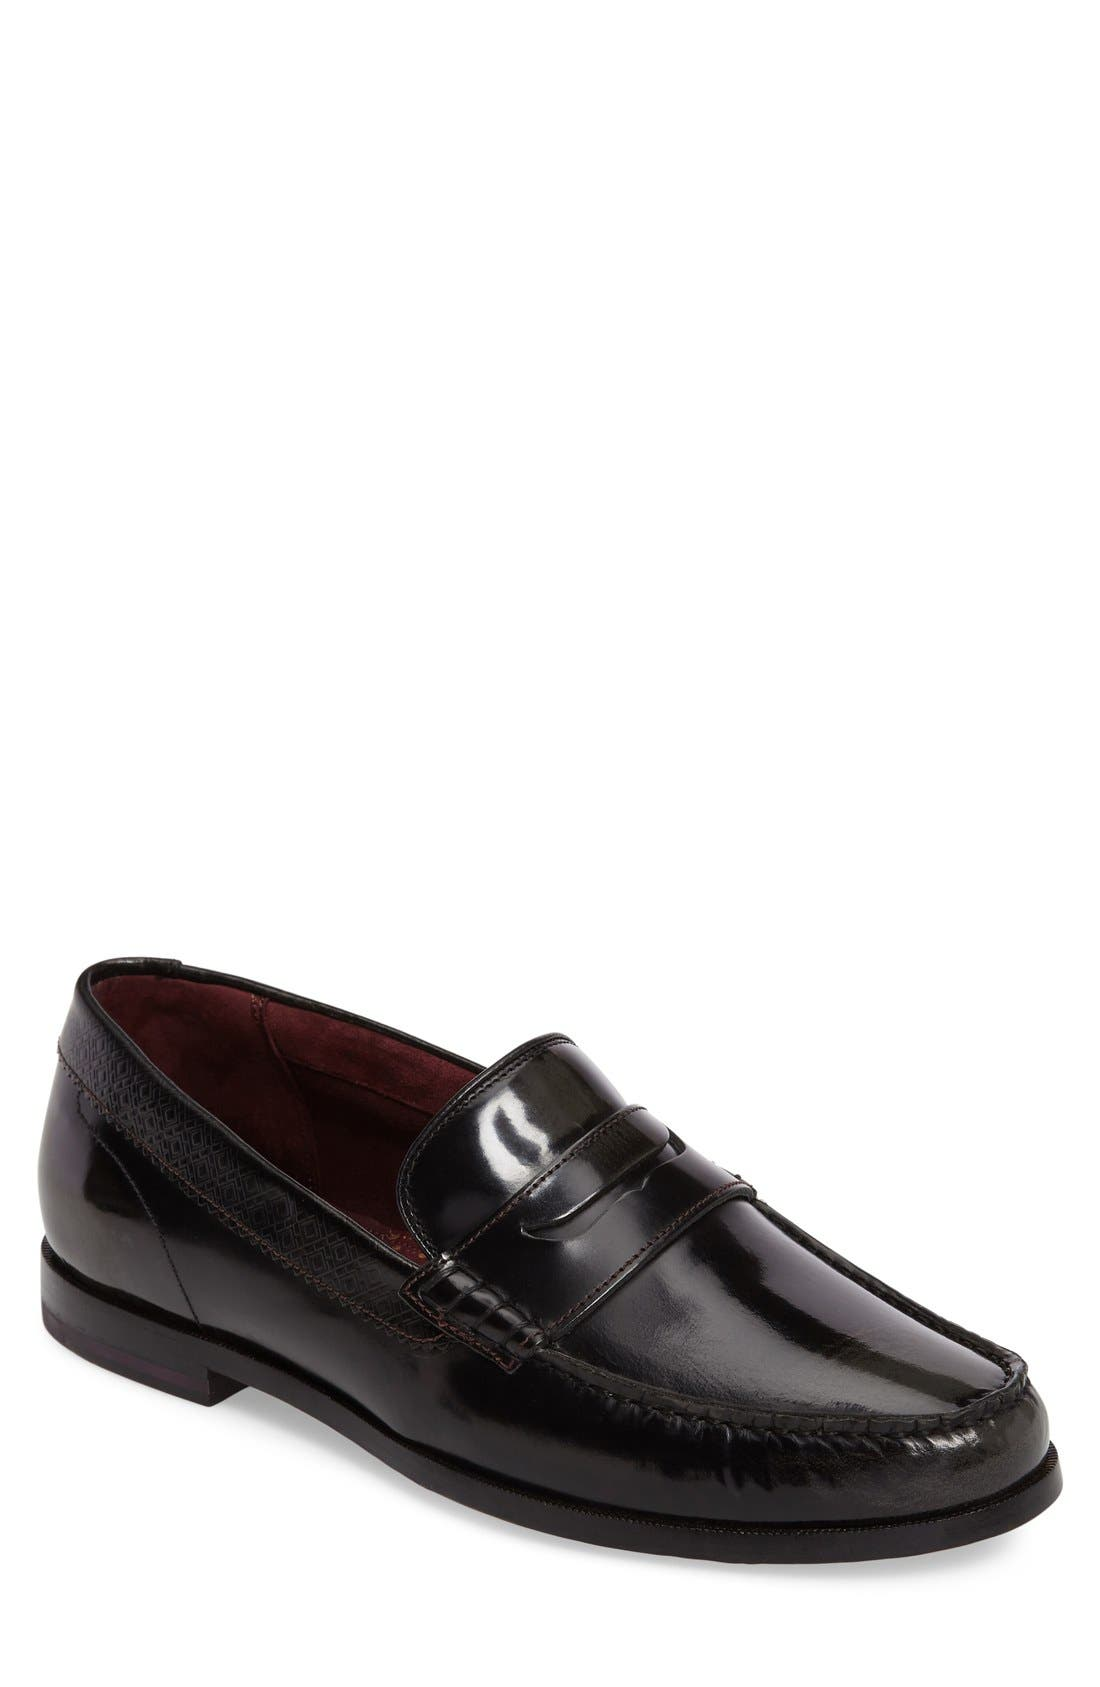 Rommeo Penny Loafer,                             Main thumbnail 1, color,                             028